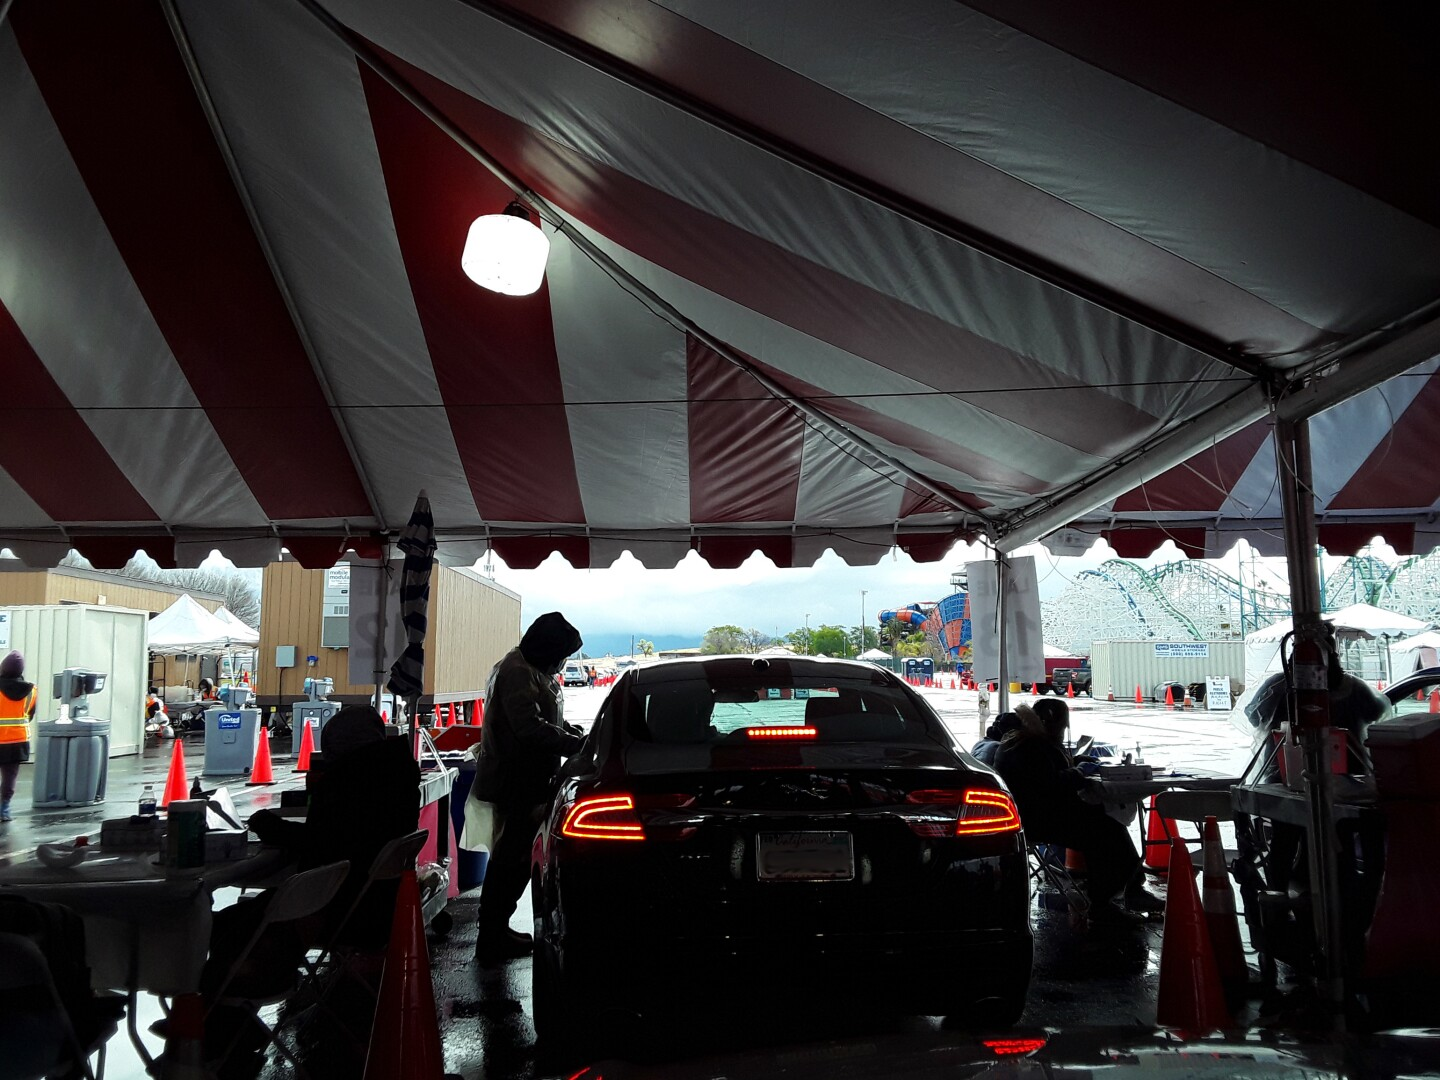 A car pulls into a tent as the driver preps to receive a dose of the vaccine in the parking lot of Six Flags Magic Mountain in Valencia, California.